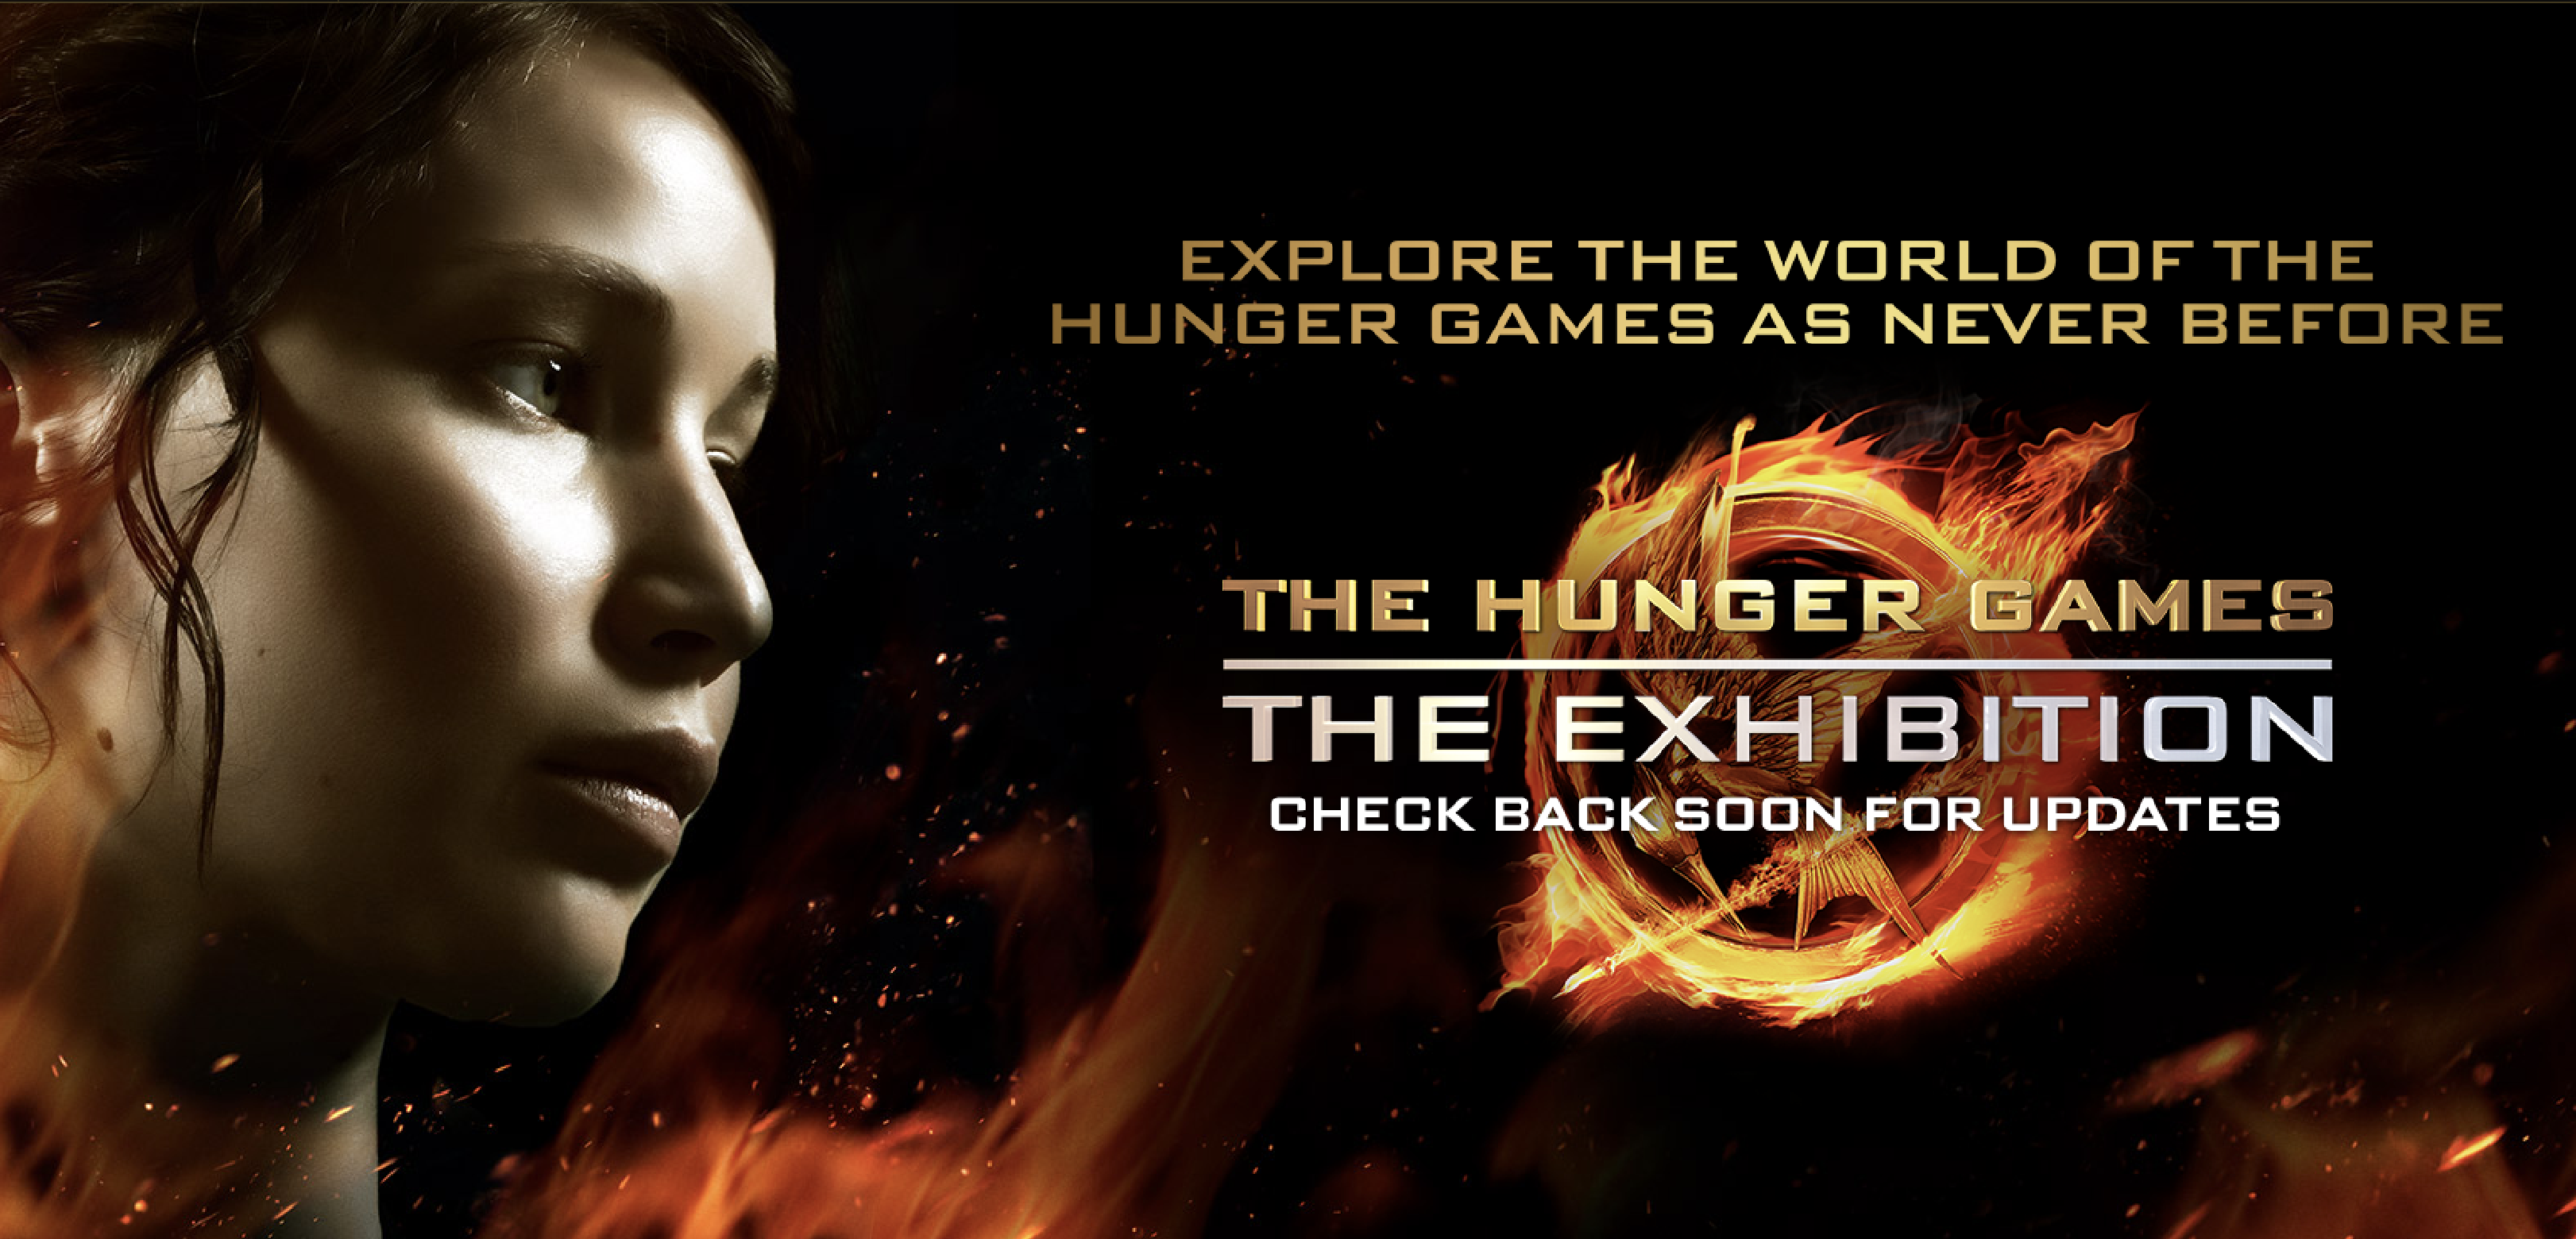 The Hunger Games - The Exhibition